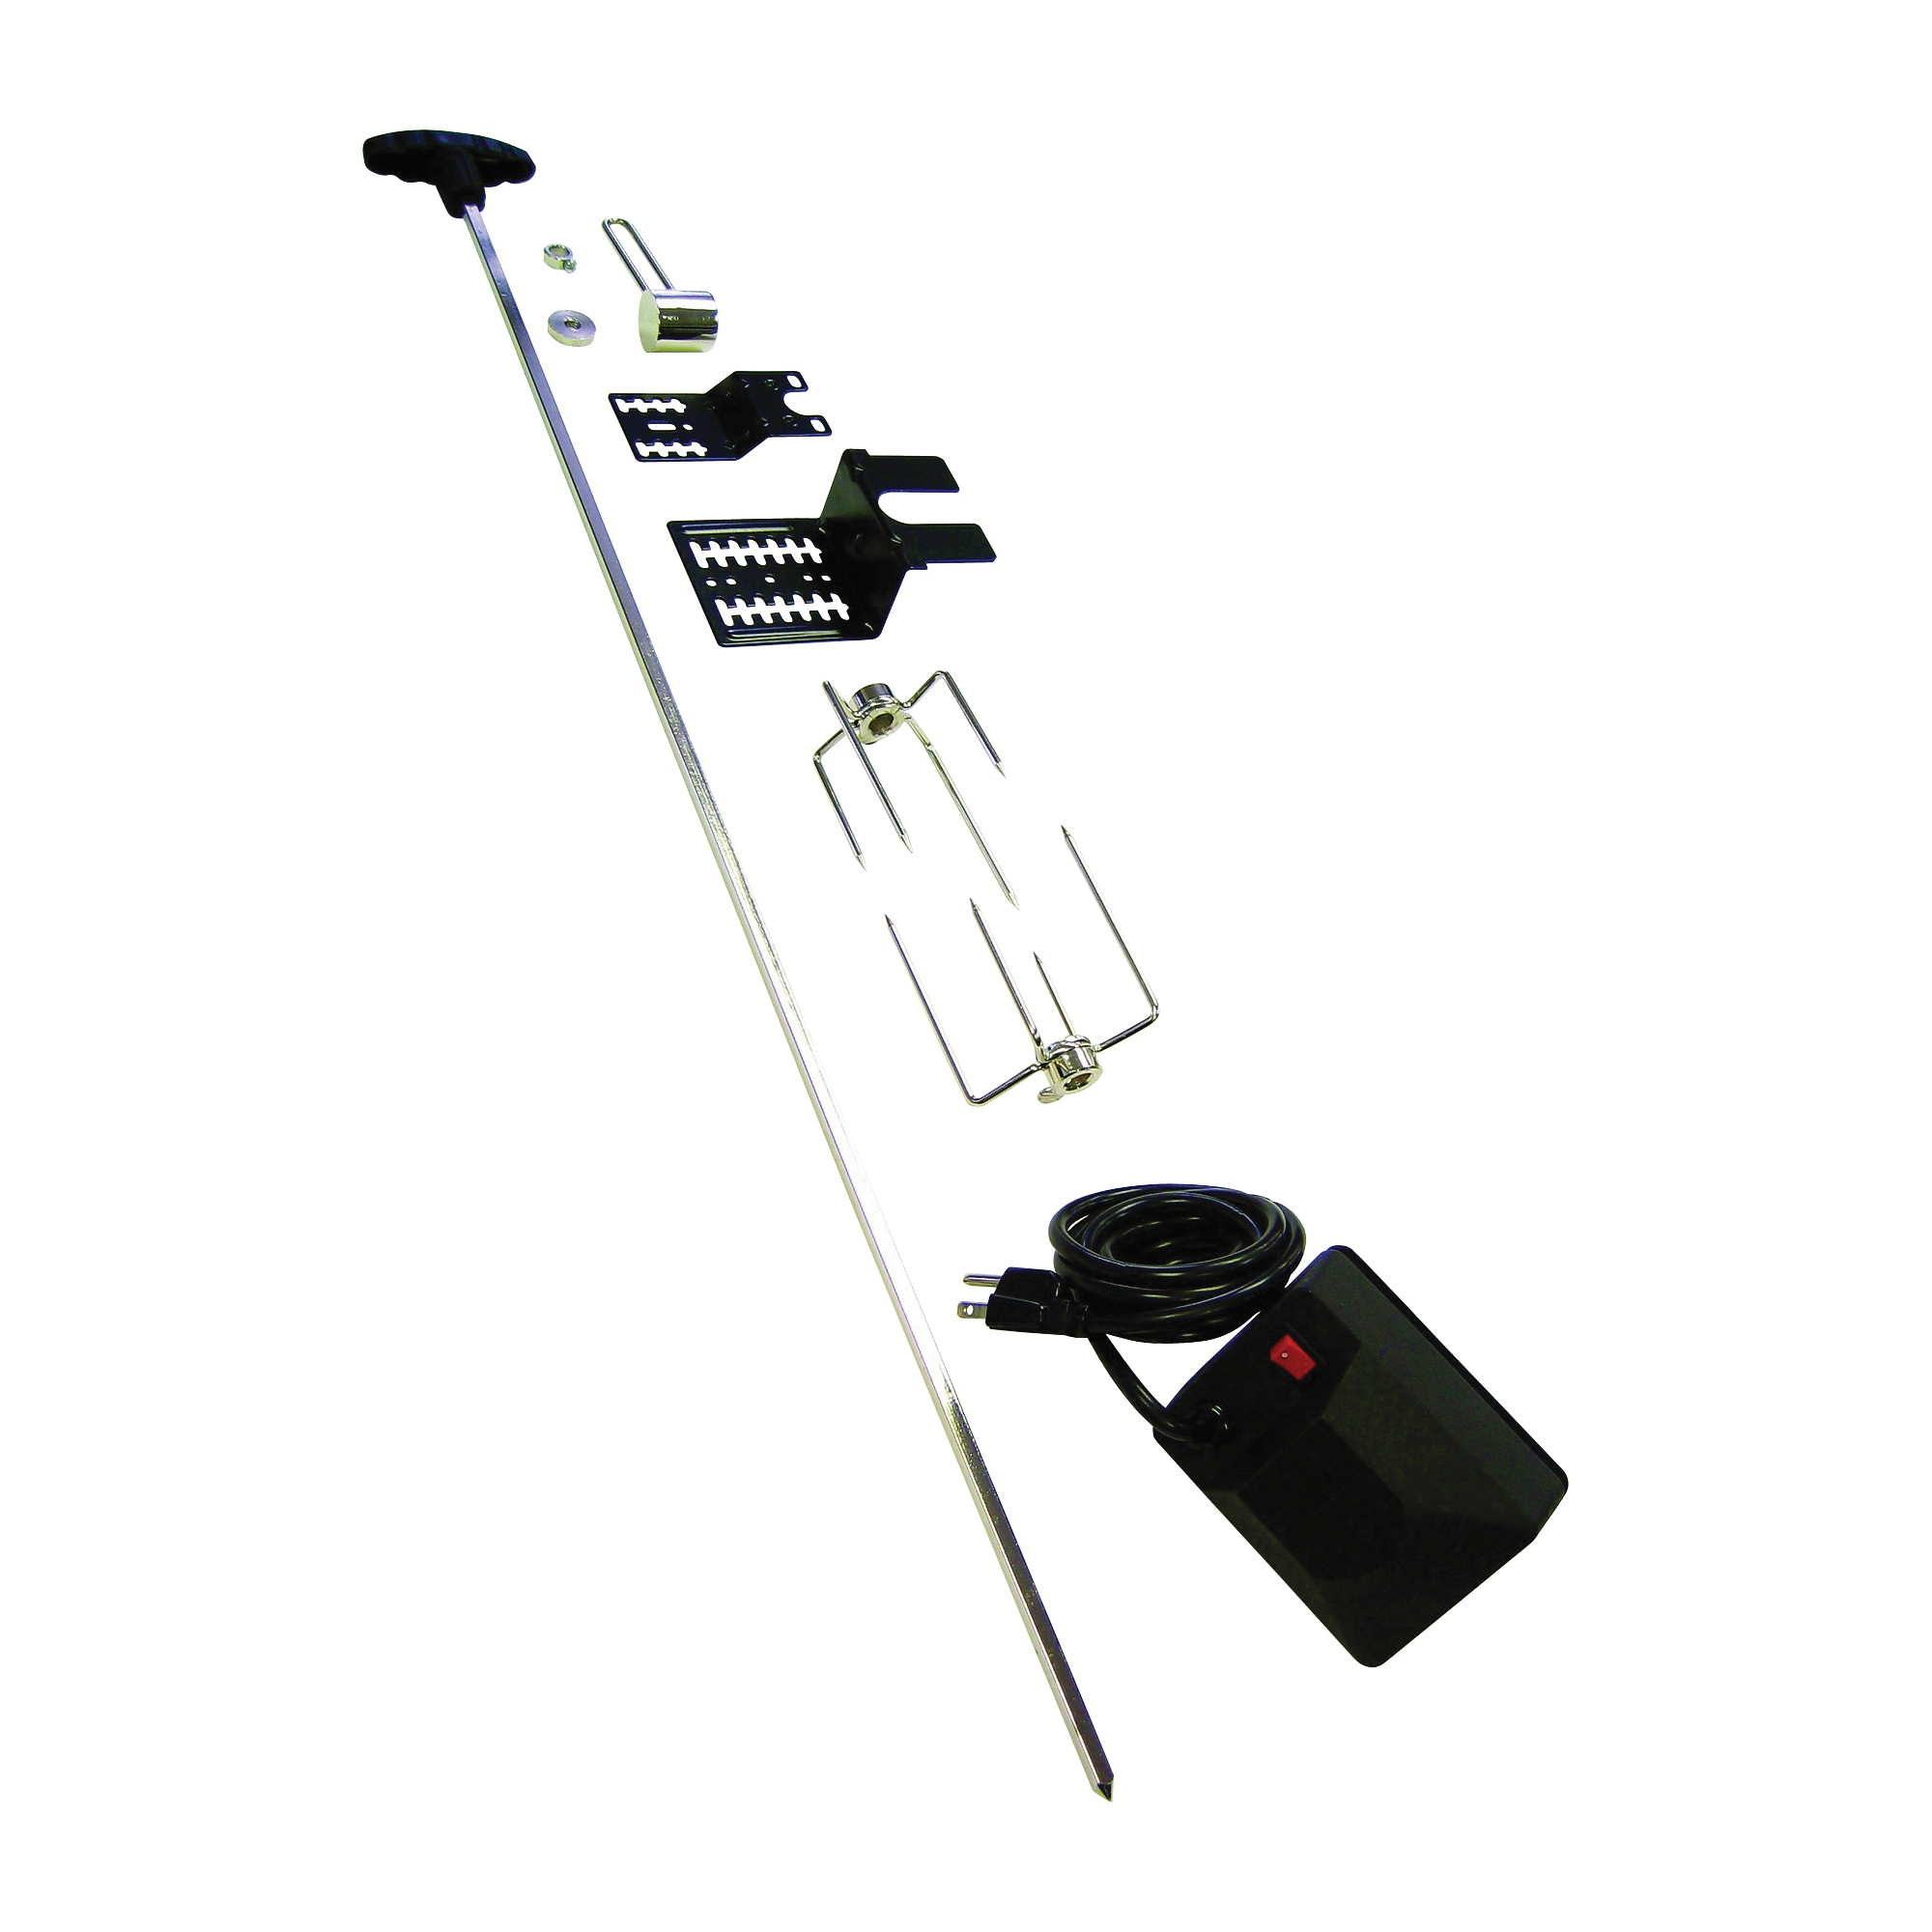 Picture of GrillPro 60090 Grill Rotisserie Kit, Universal, For: Broil King, Broil Mate, Sterling and GrillPro Grills